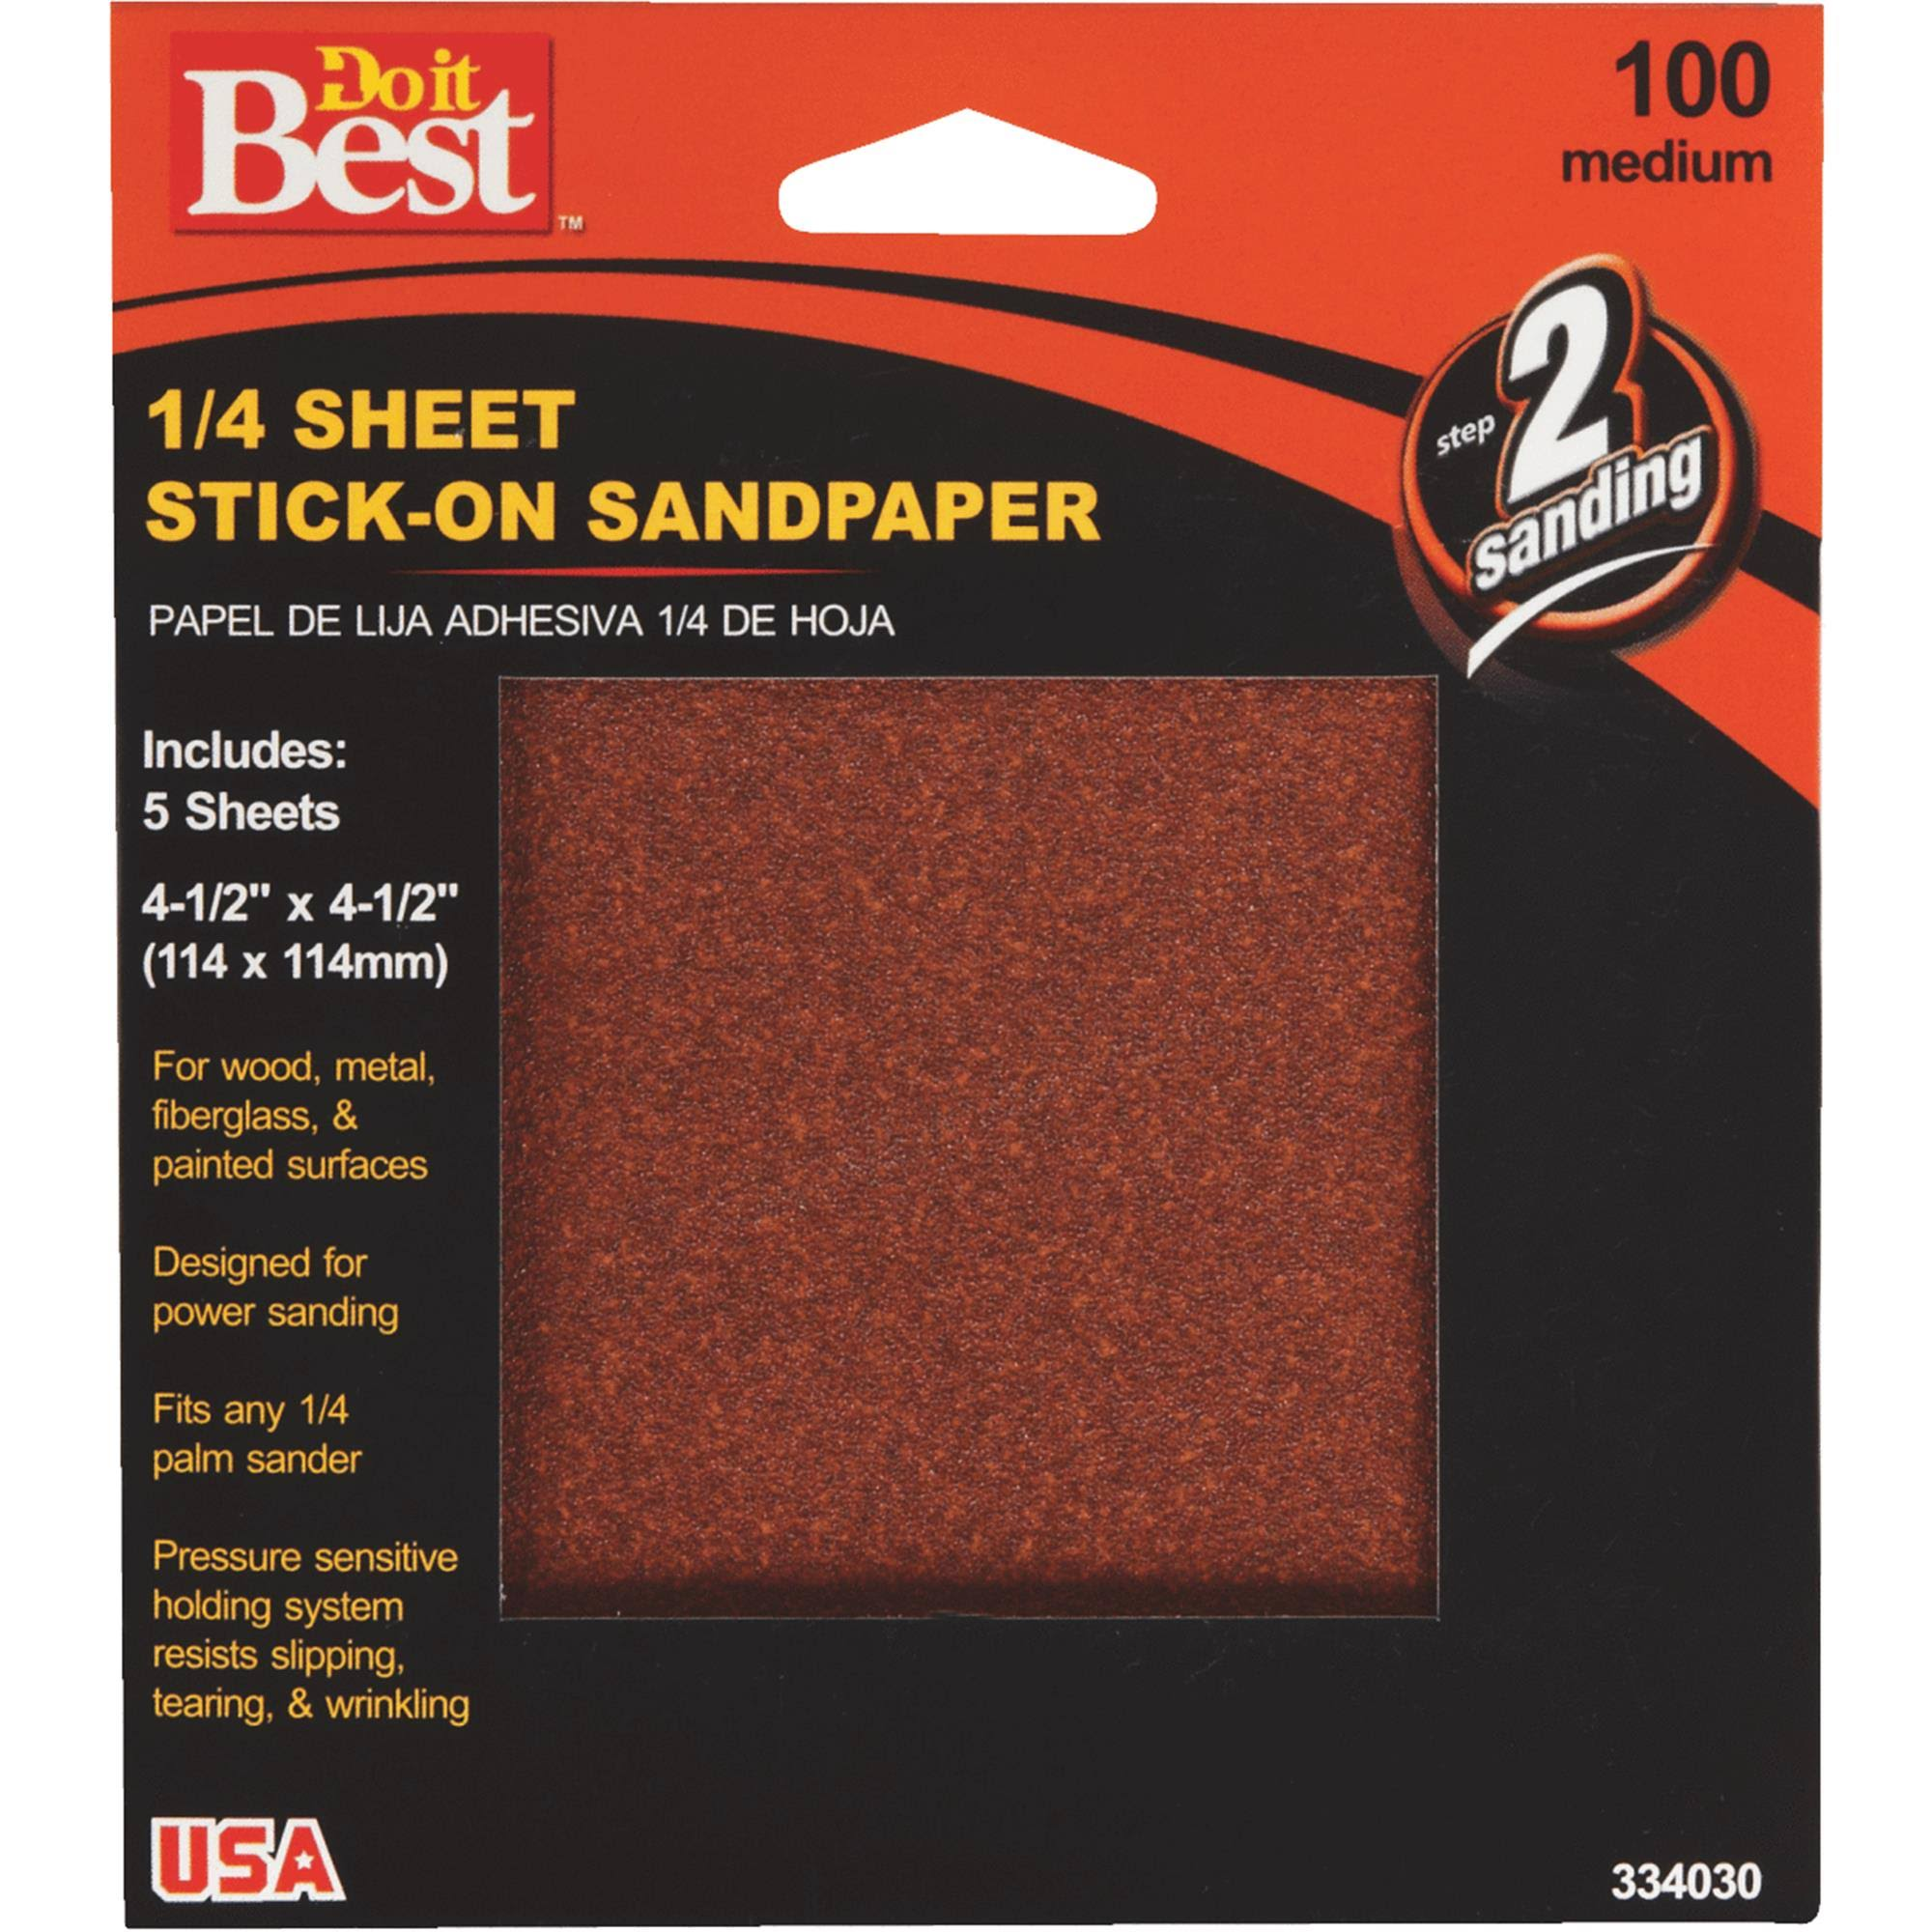 Do it Best Stick-On Sandpaper - 1/4 sheet